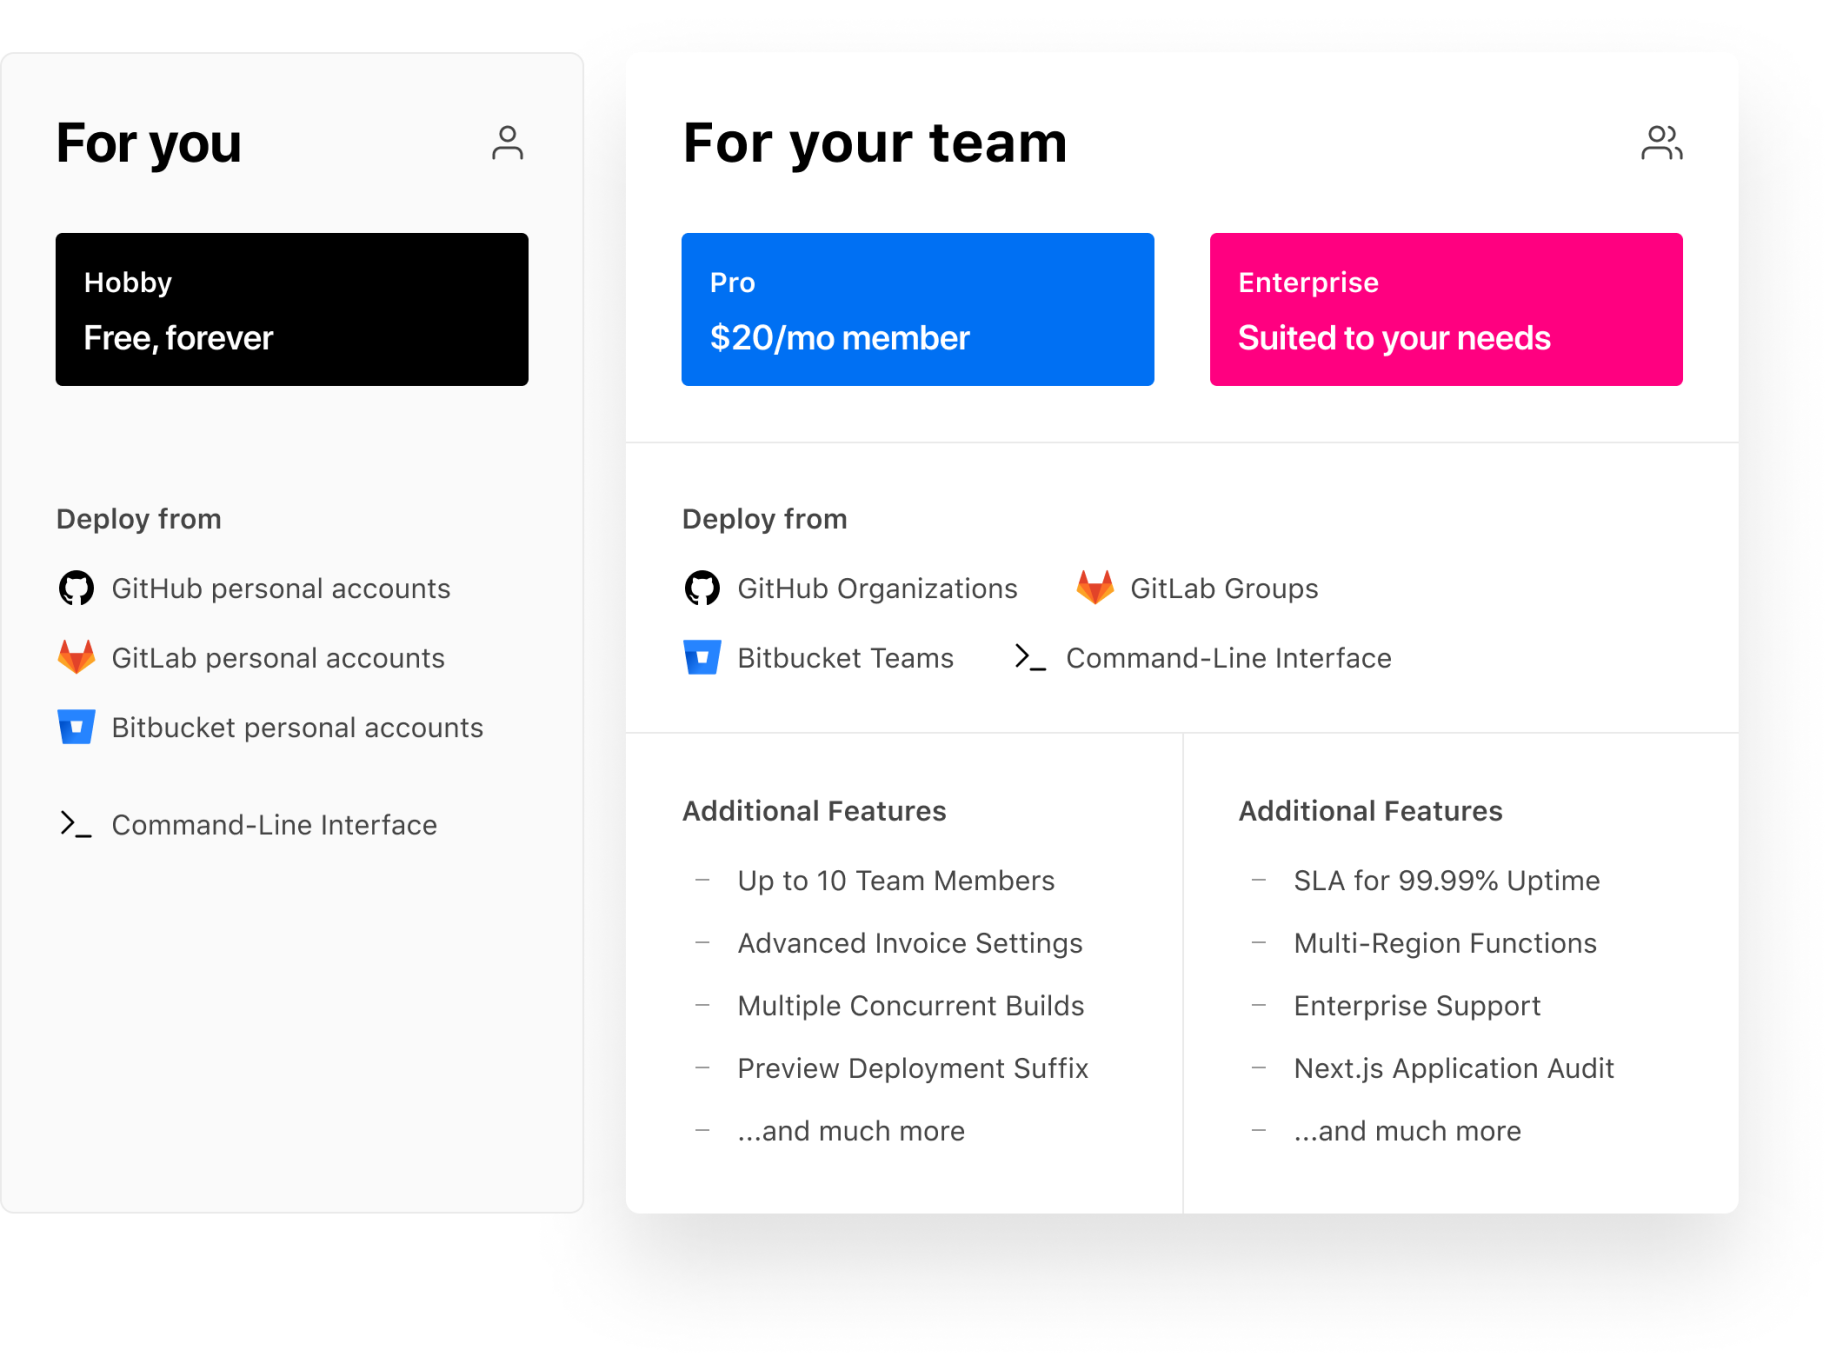 The new pricing plans for Personal Accounts and Teams.